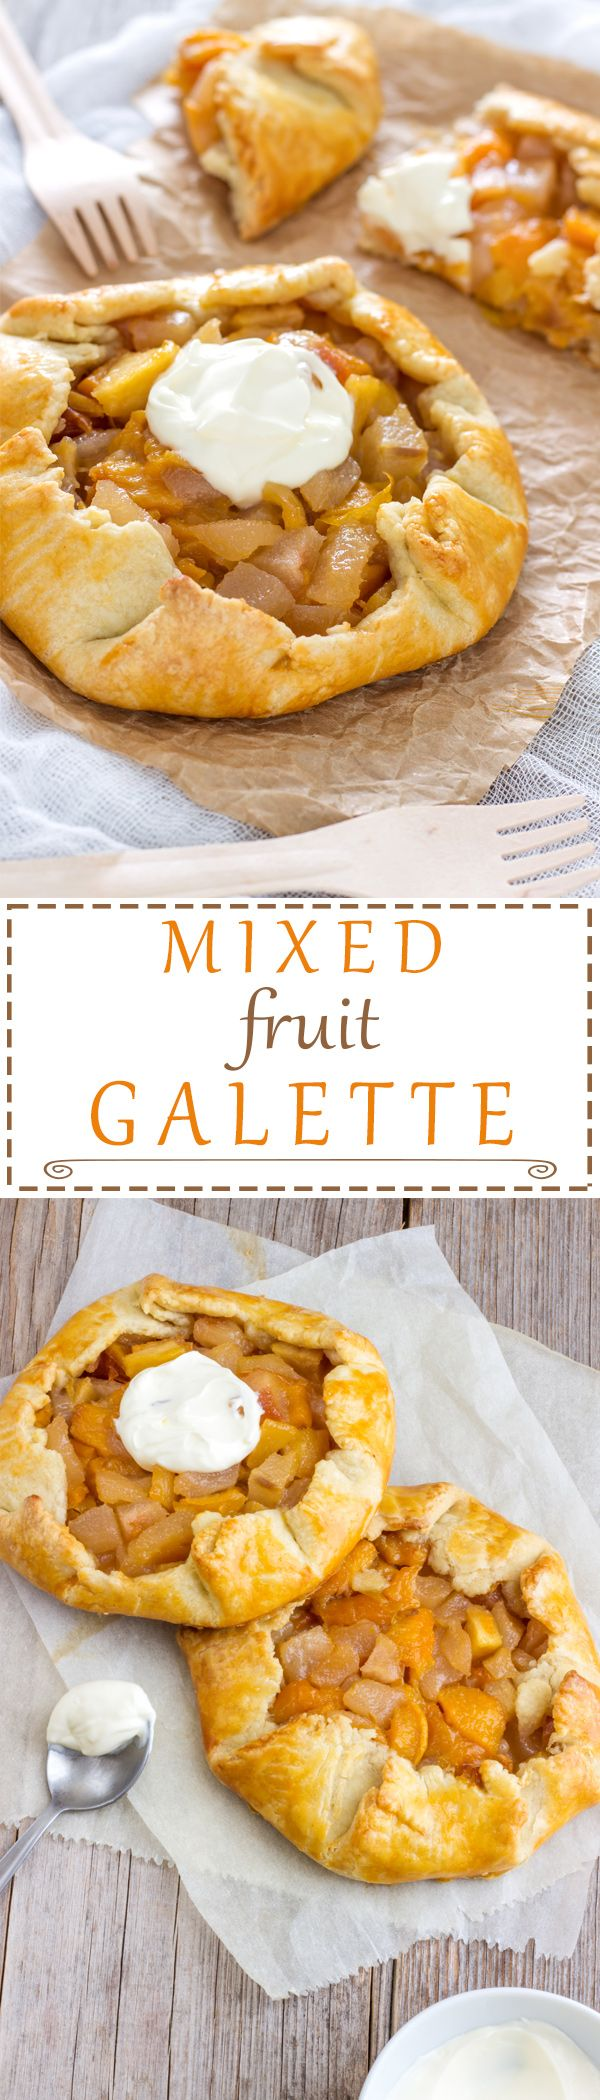 Mixed Fruit Galette is one of the easiest things to bake! What is great about galette is that you can use any fruit you like. It's rustic, which also means it doesn't have to look perfect but it still will taste amazing! Easy recipe! | happyfoodstube.com